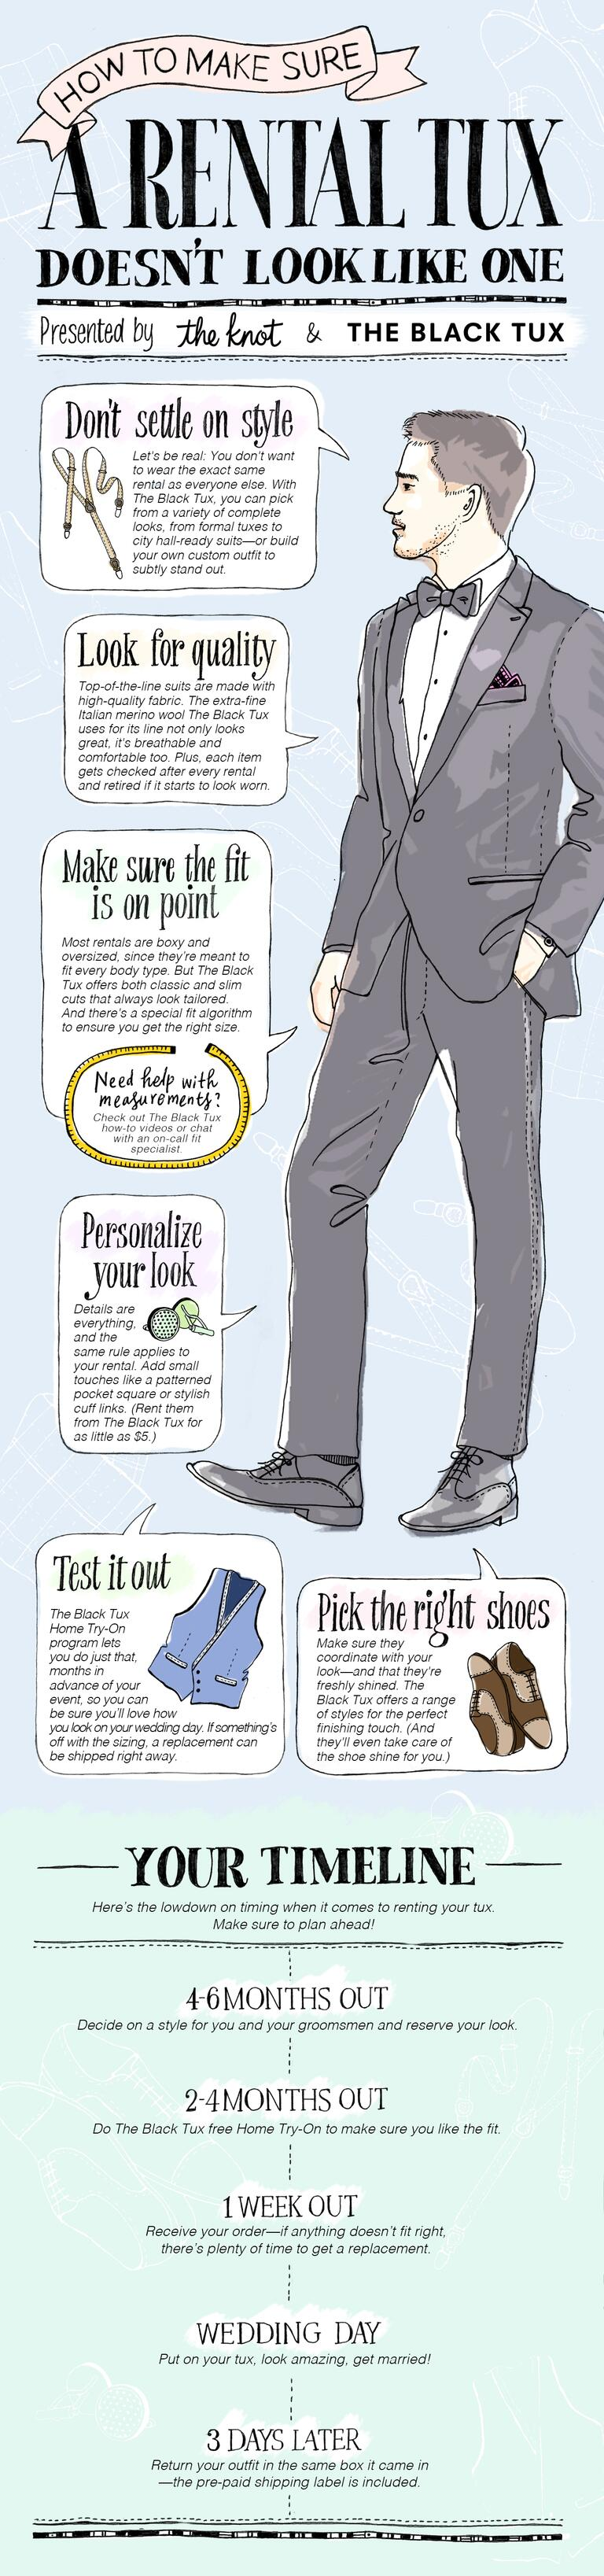 Infographic featuring a guy in a tux with tips for looking great